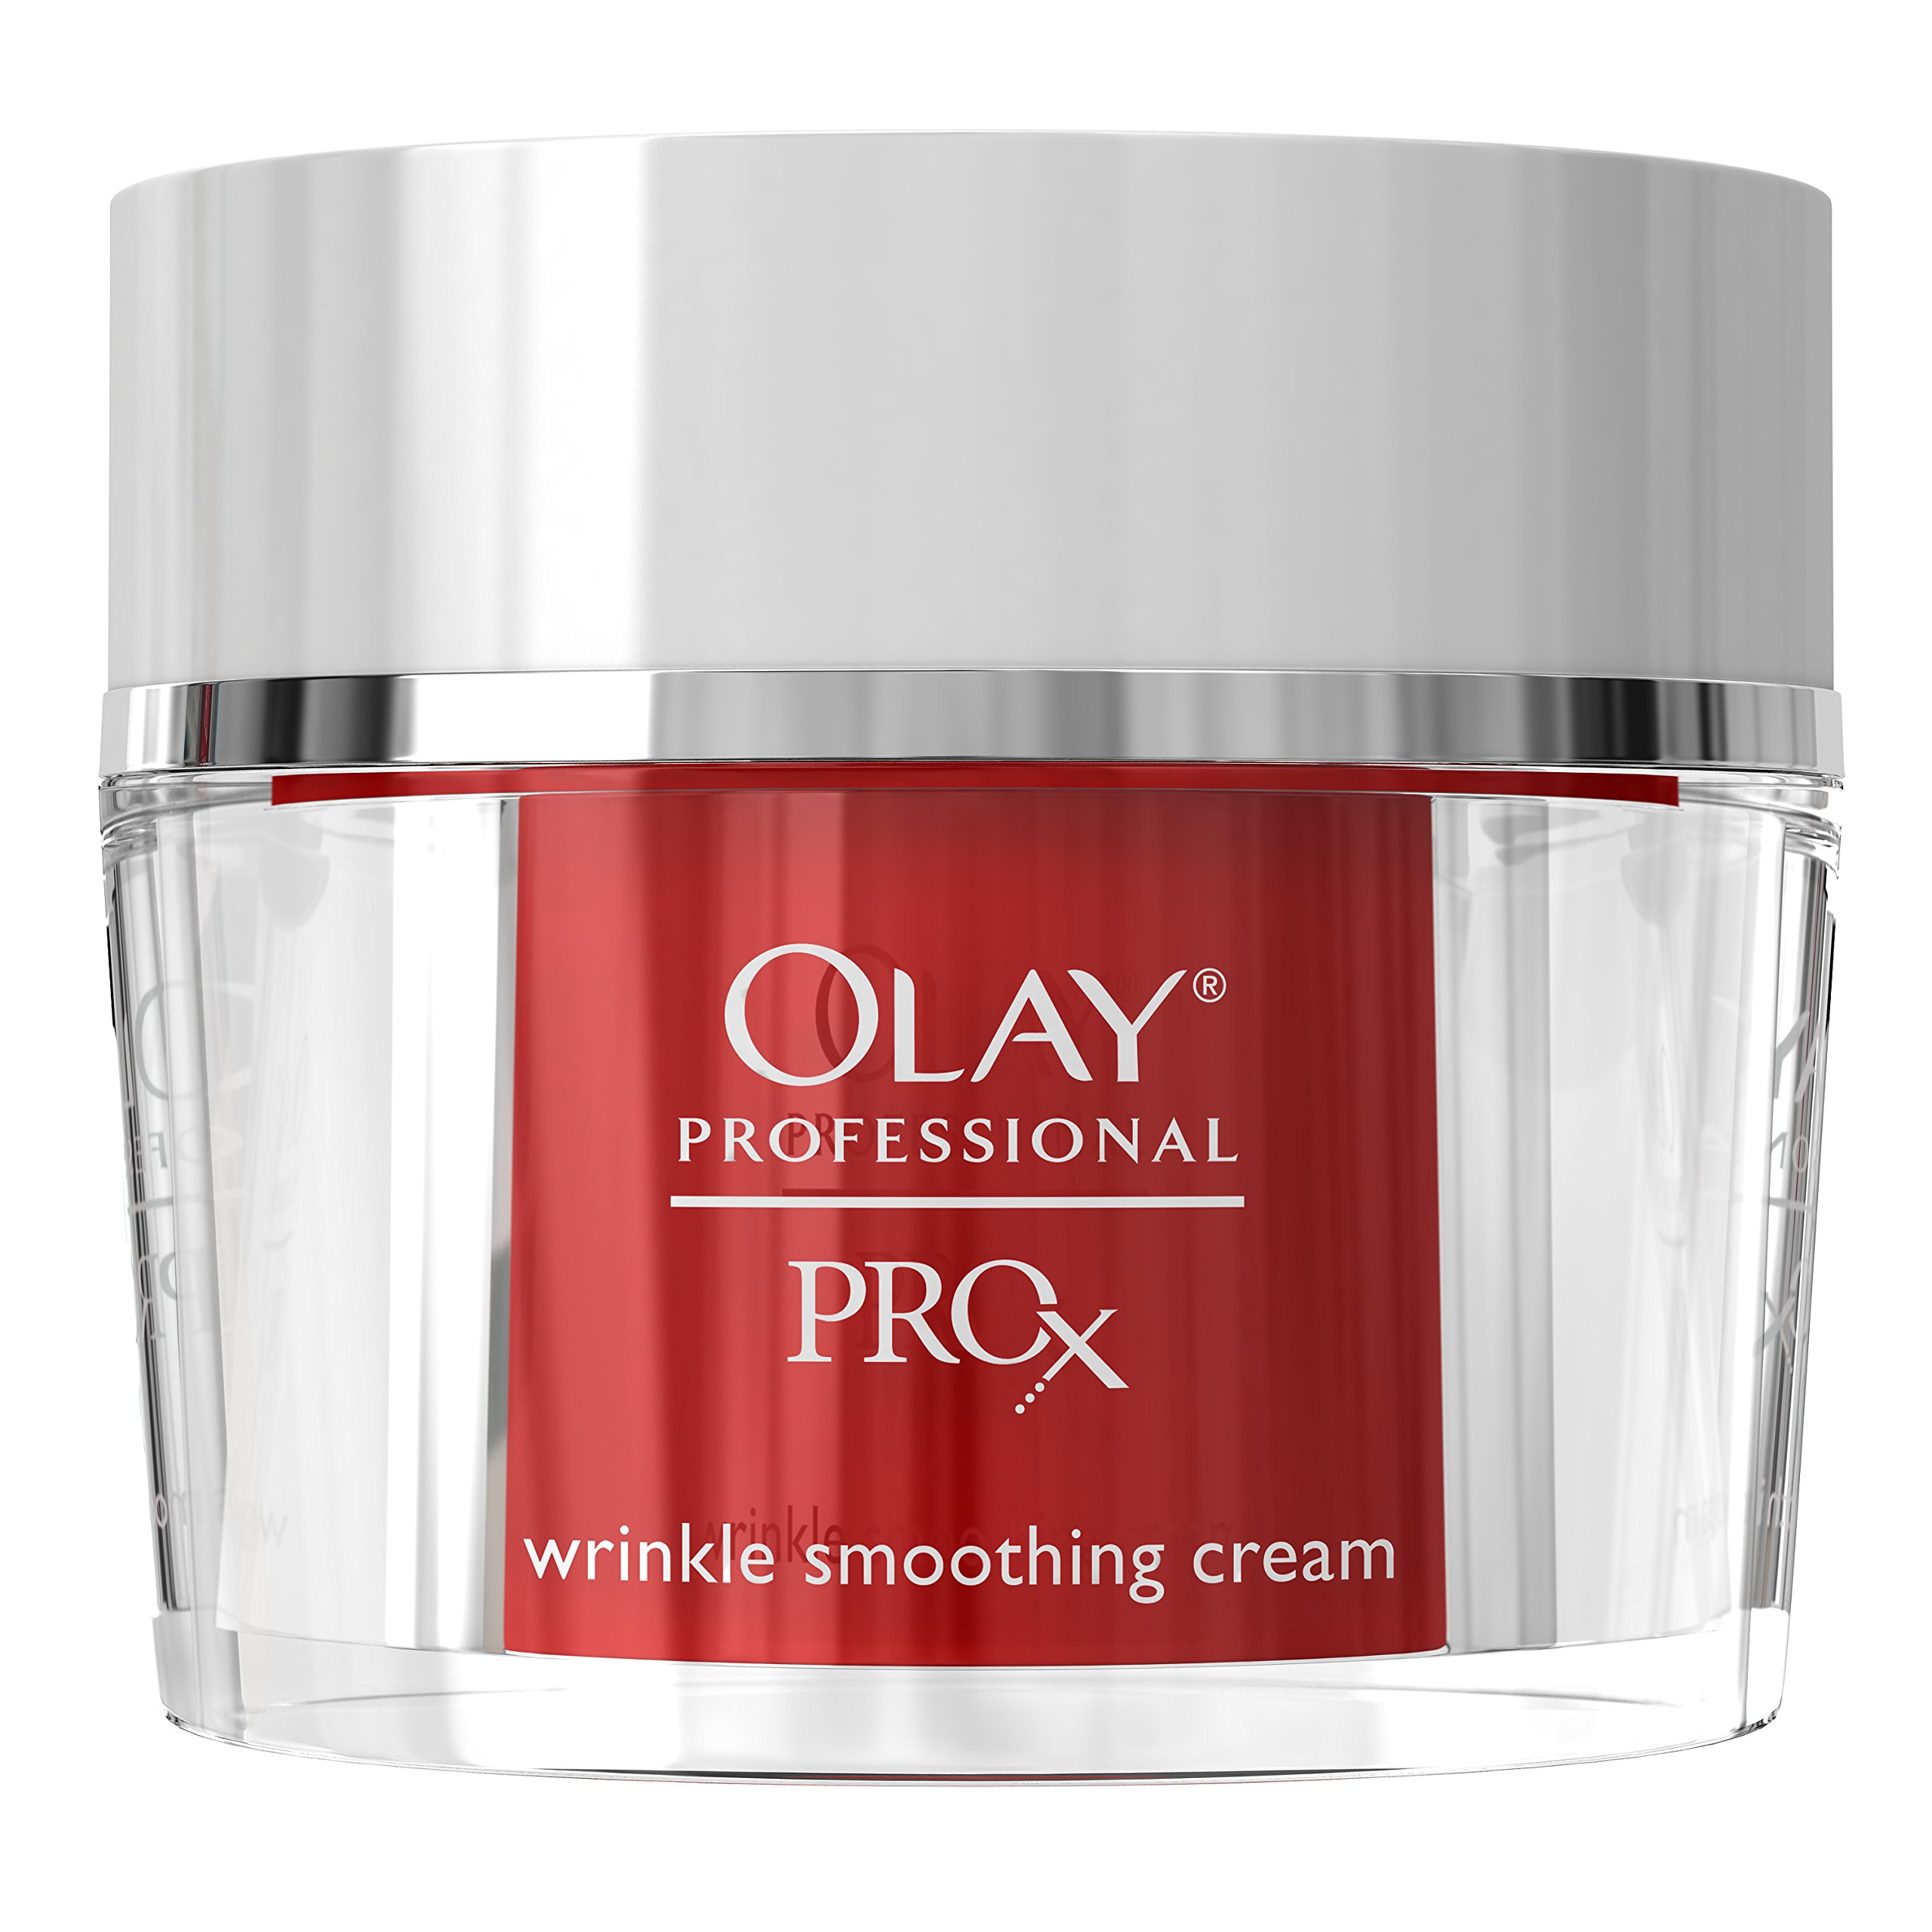 Olay Professional ProX Wrinkle Smoothing Cream Anti Aging 1.7 Oz